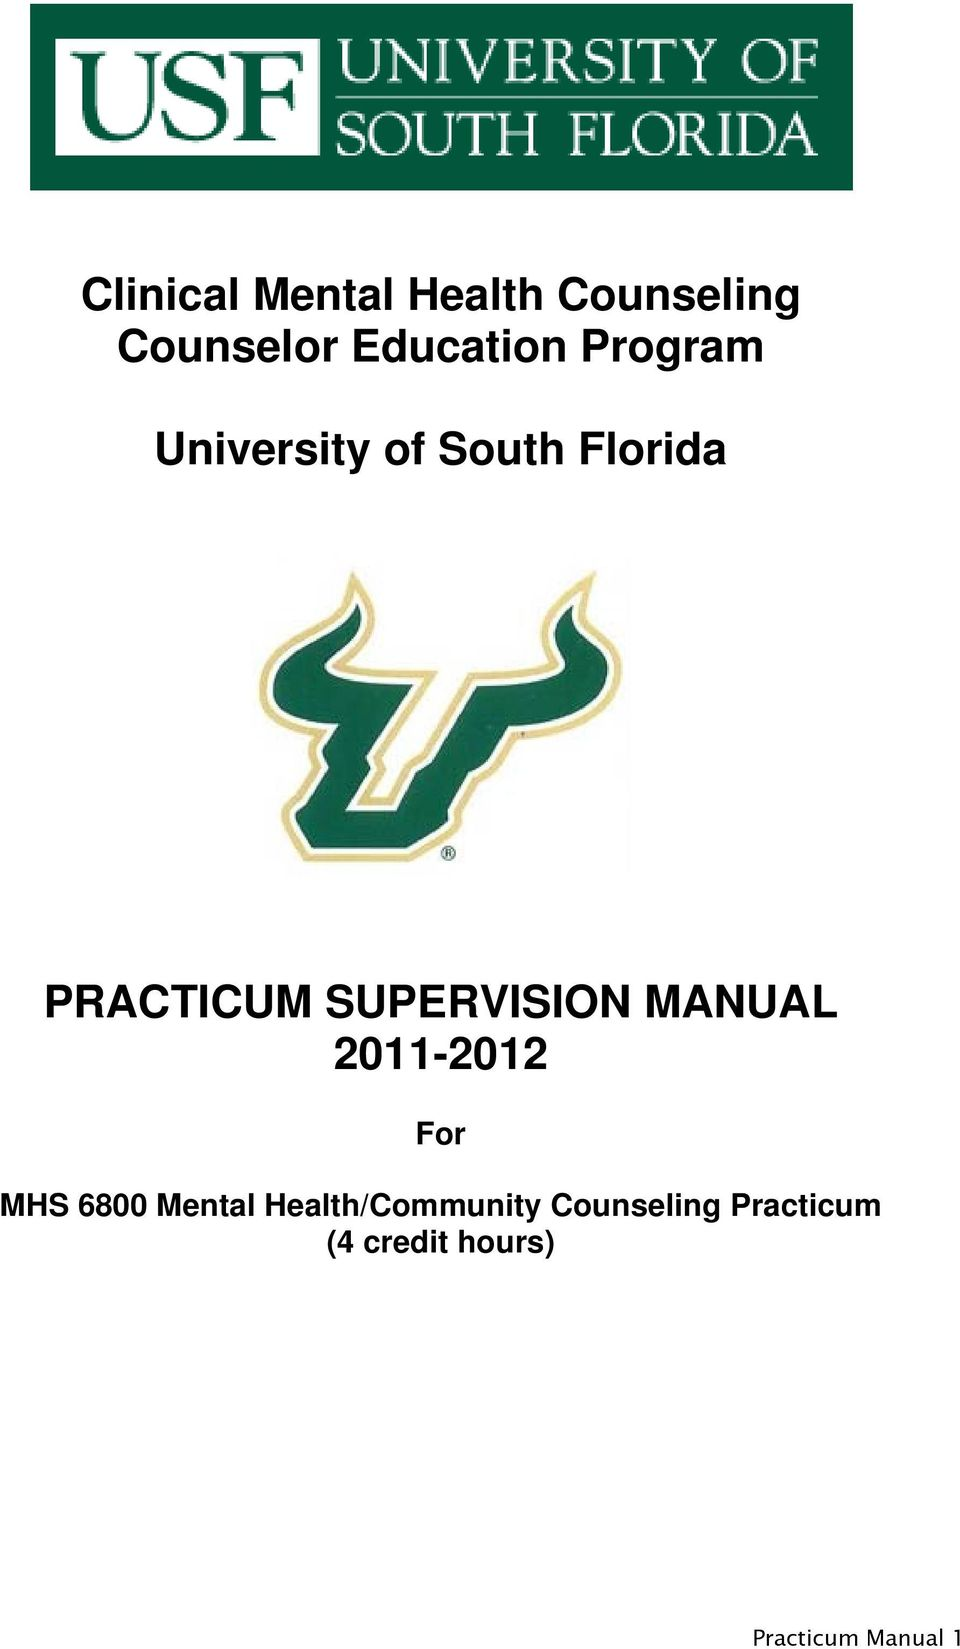 SUPERVISION MANUAL 2011-2012 For MHS 6800 Mental